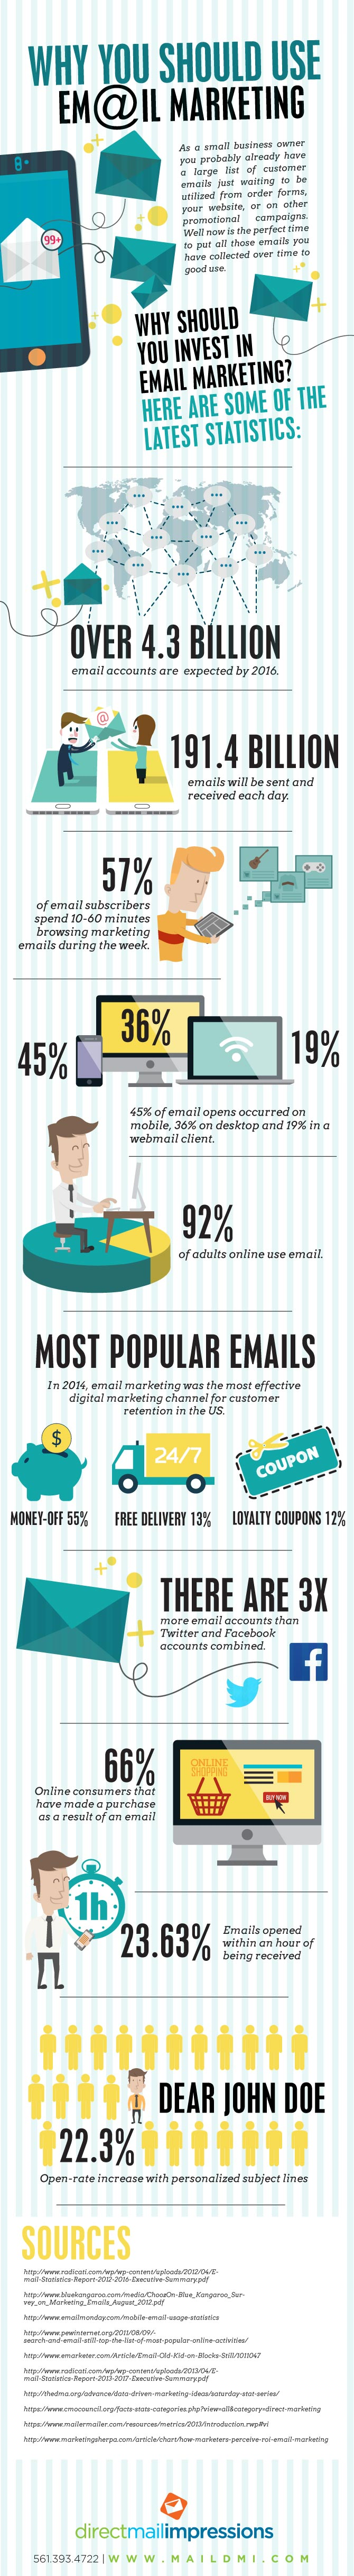 Why You Should Use Email Marketing